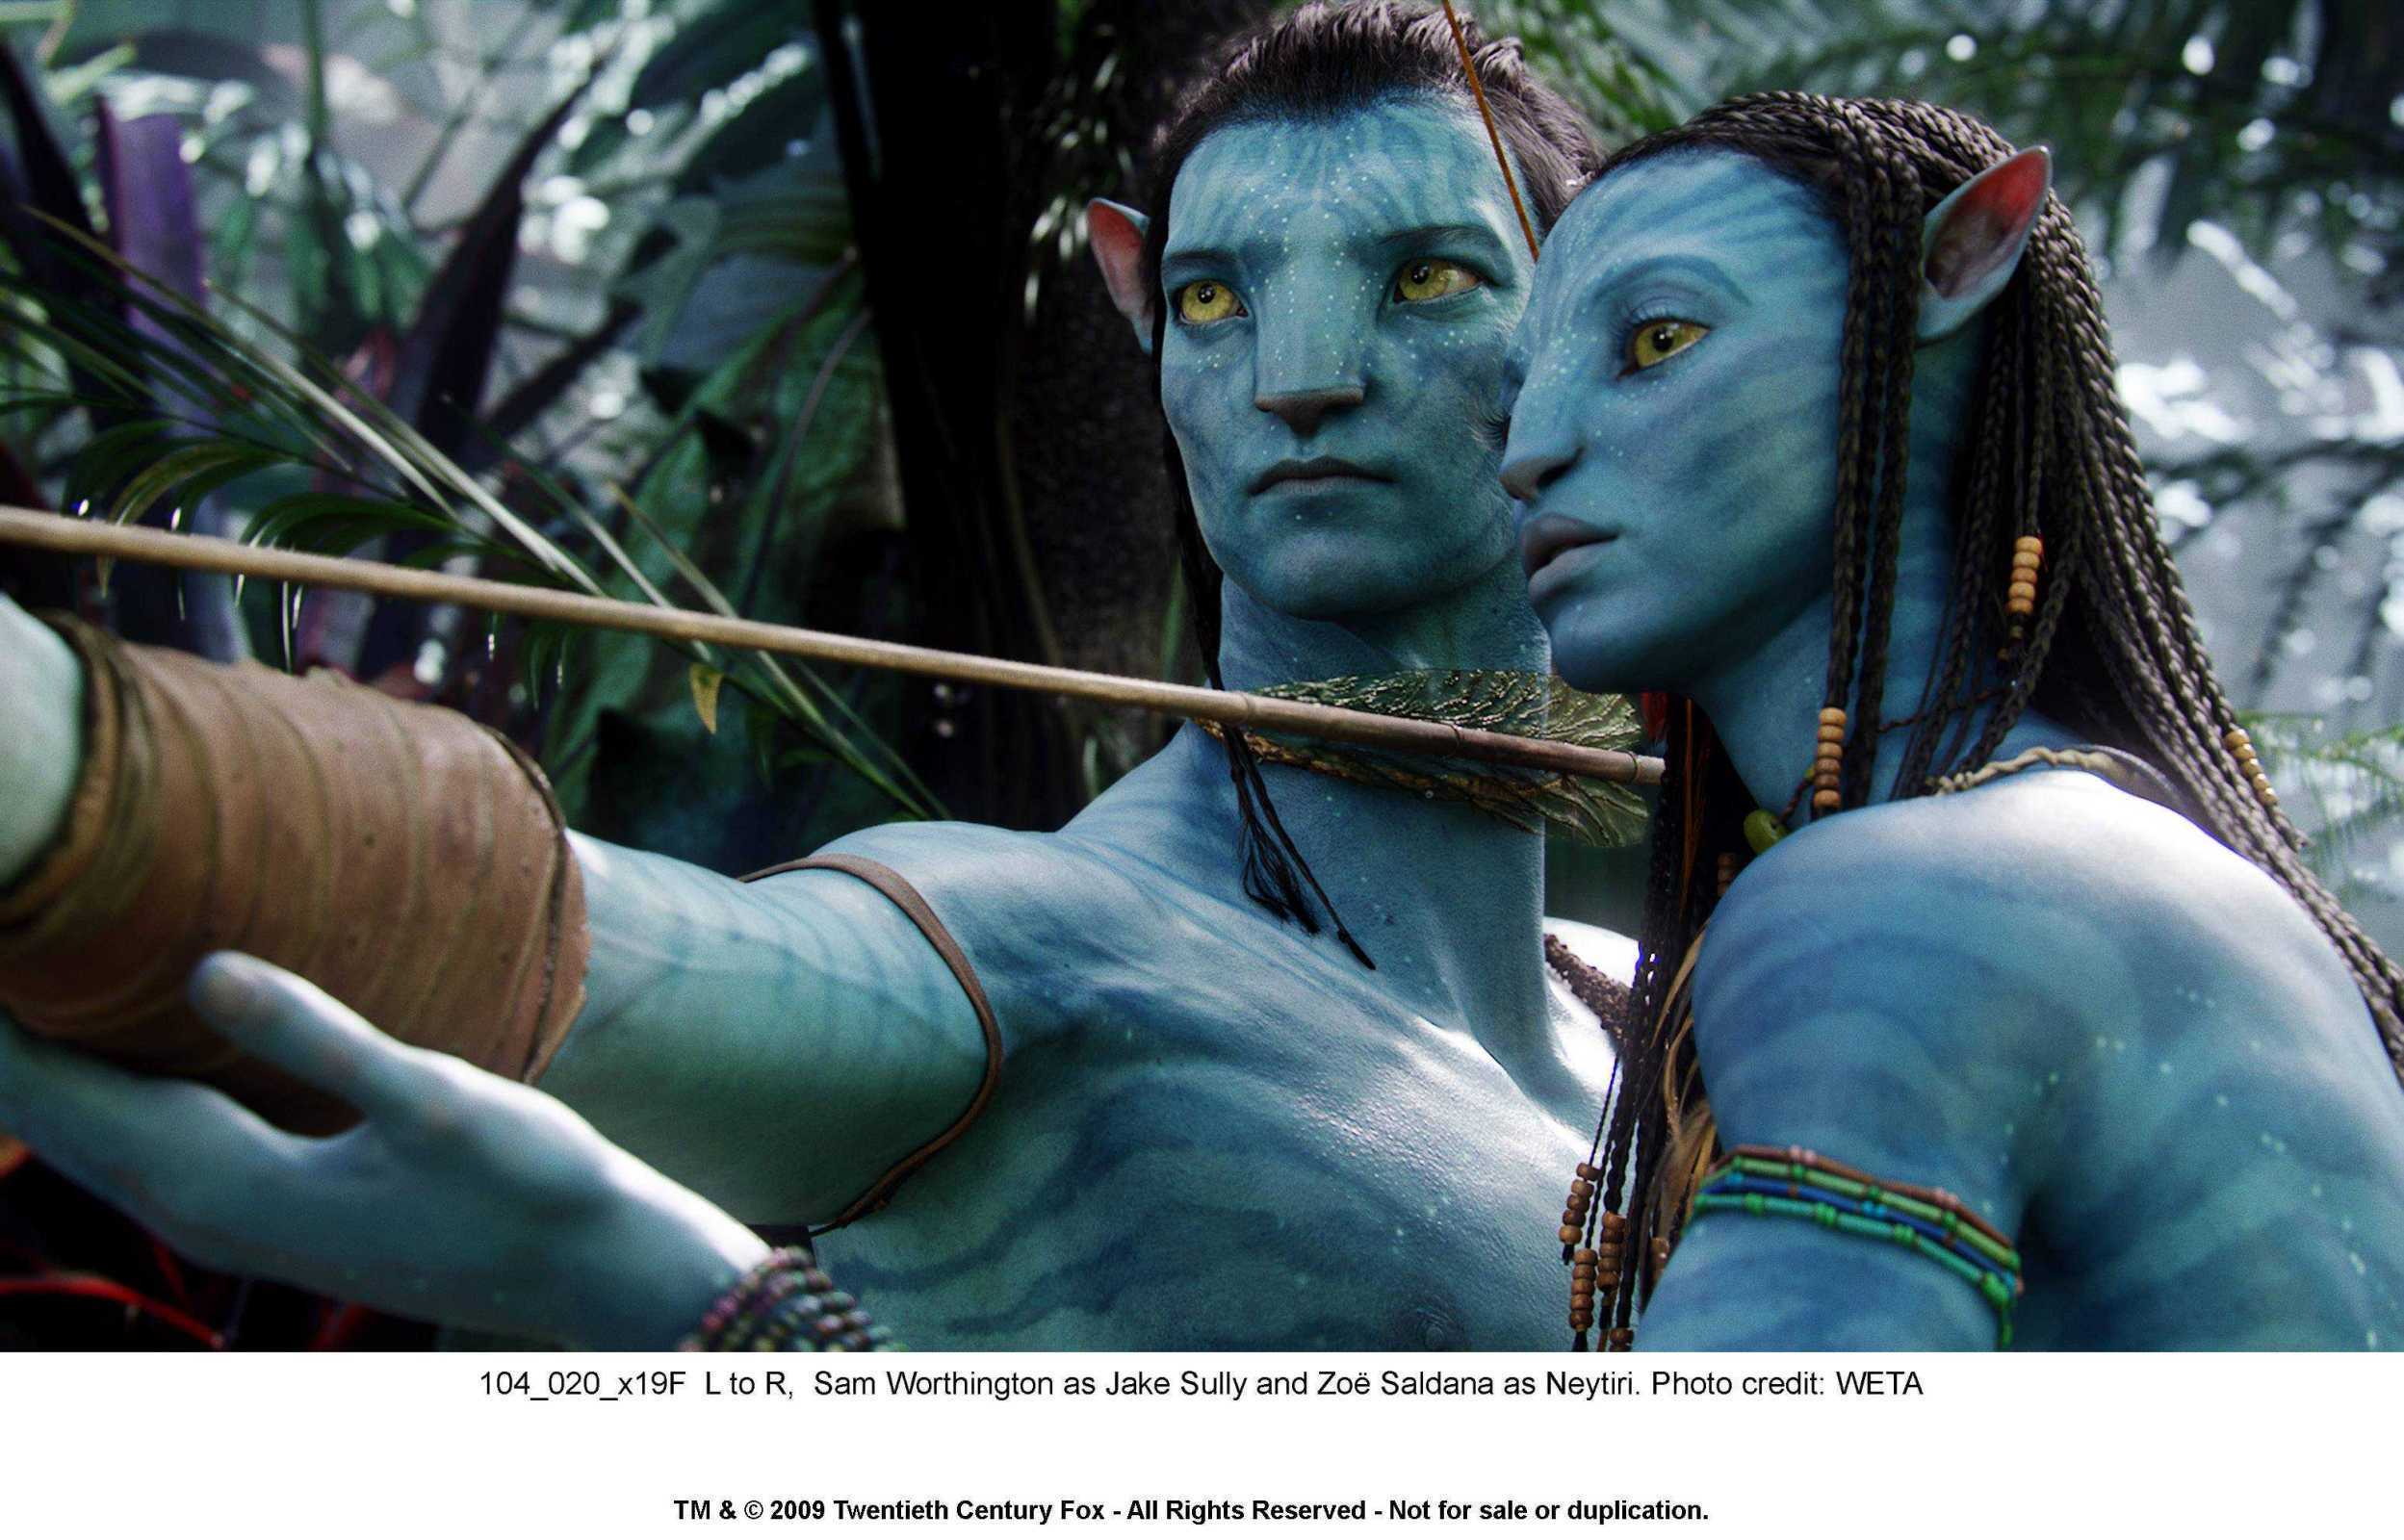 Zoe Saldana as Neytiri in Avatar - Zoe Saldana Photo ...